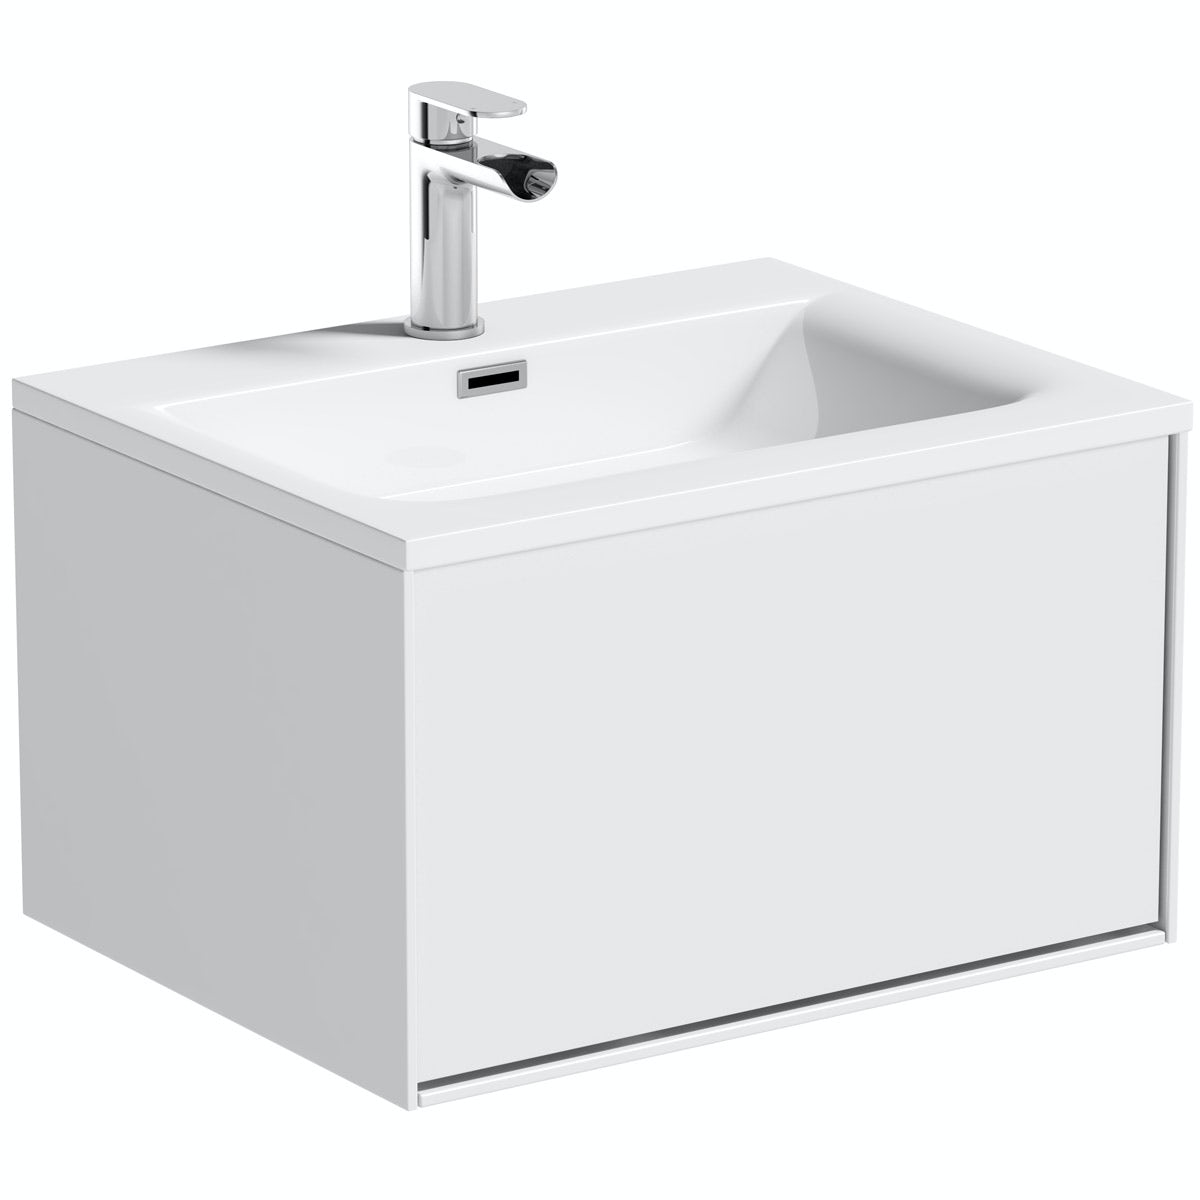 Mode Burton white wall hung vanity unit 600mm